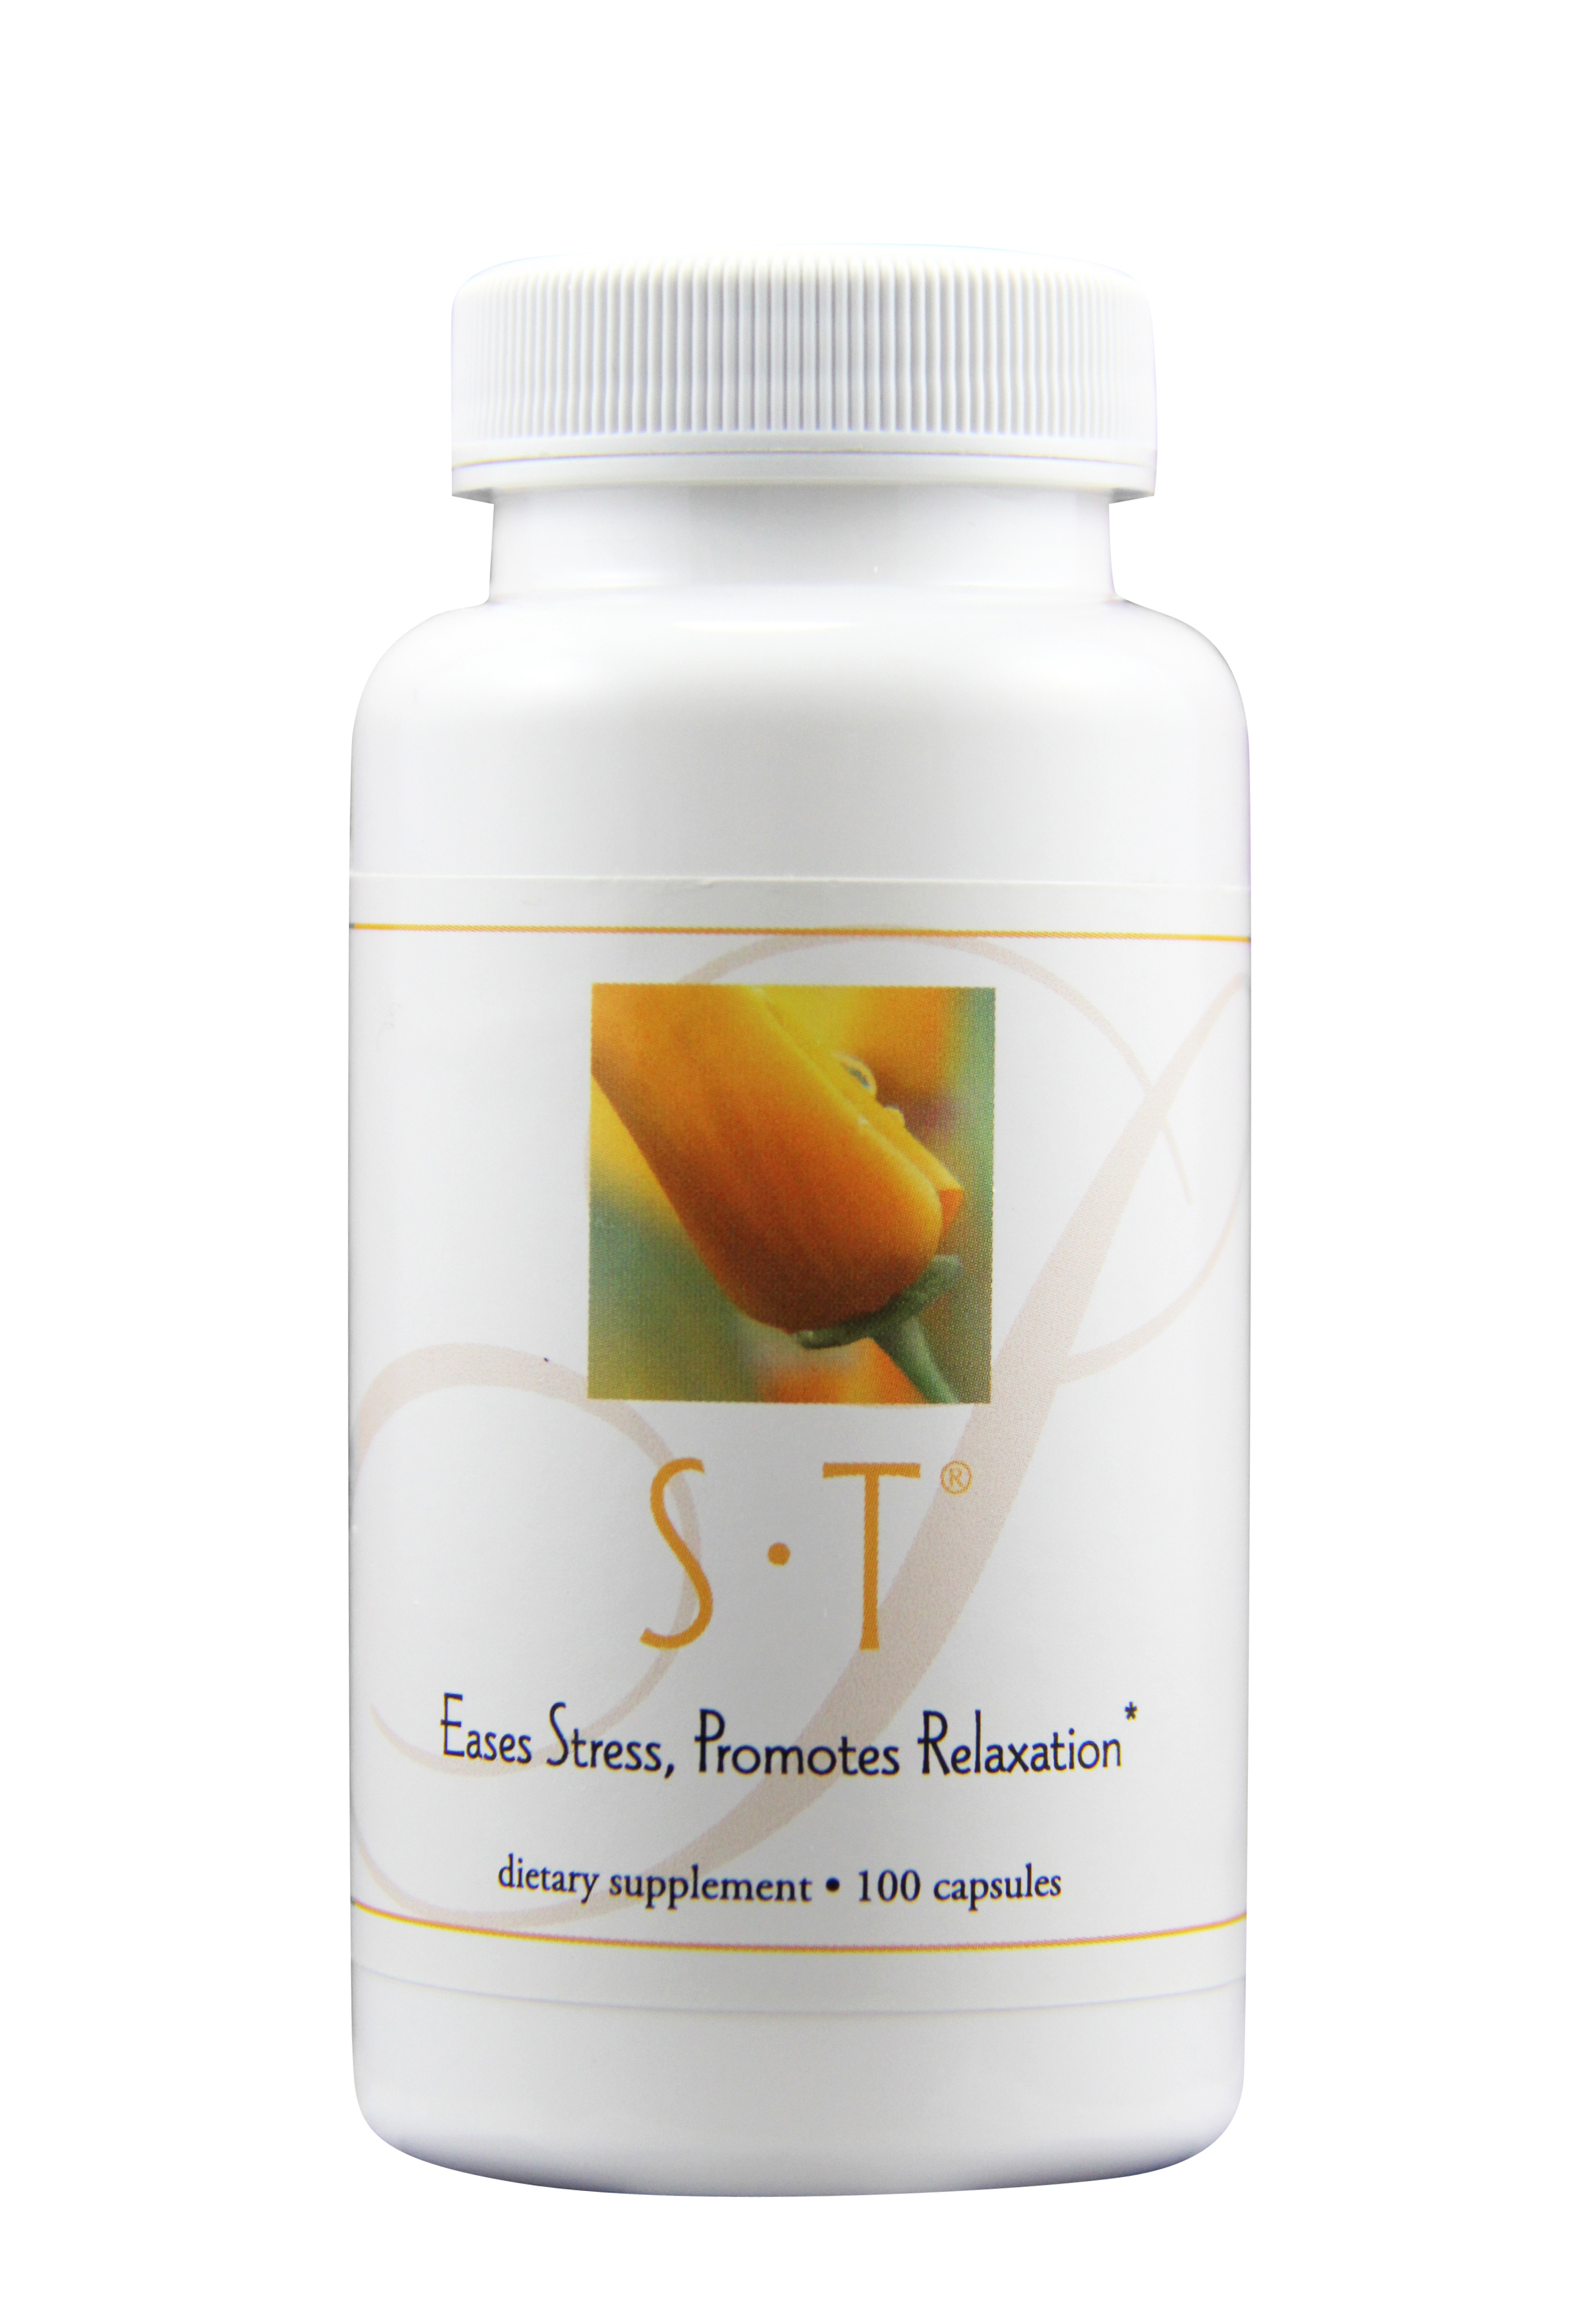 s•t - HELPS TO PROMOTE SERENITY, RELAXATION, AND FOCUS*Featured Ingredients: Privet Fruit, Knotweed, Pearl, Chinese Dodder Seed, Chrysanthemum, Panax Ginseng, Chinese Cassia